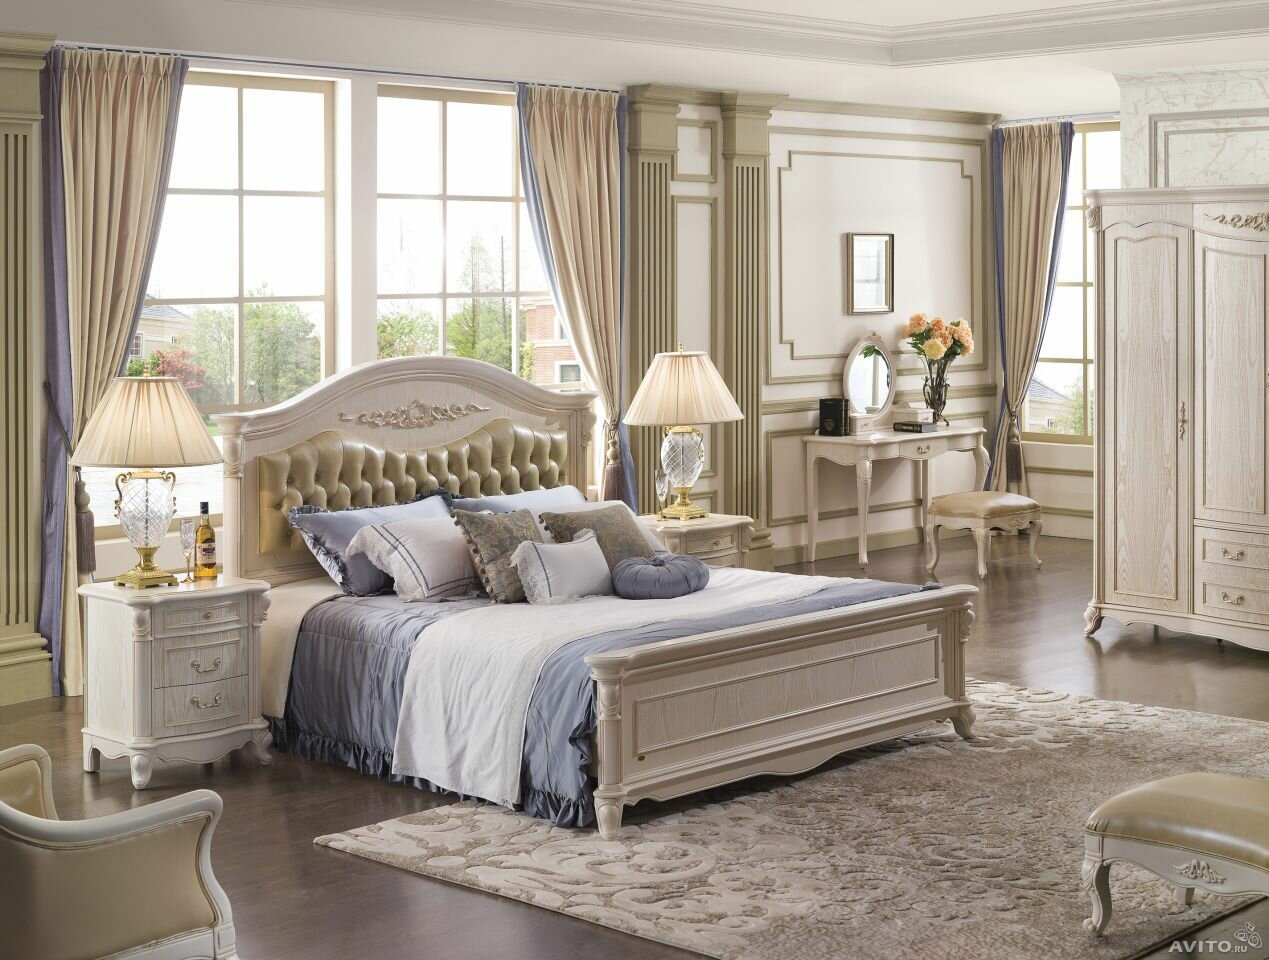 most beautiful bedrooms 5 - Beautiful Bedrooms